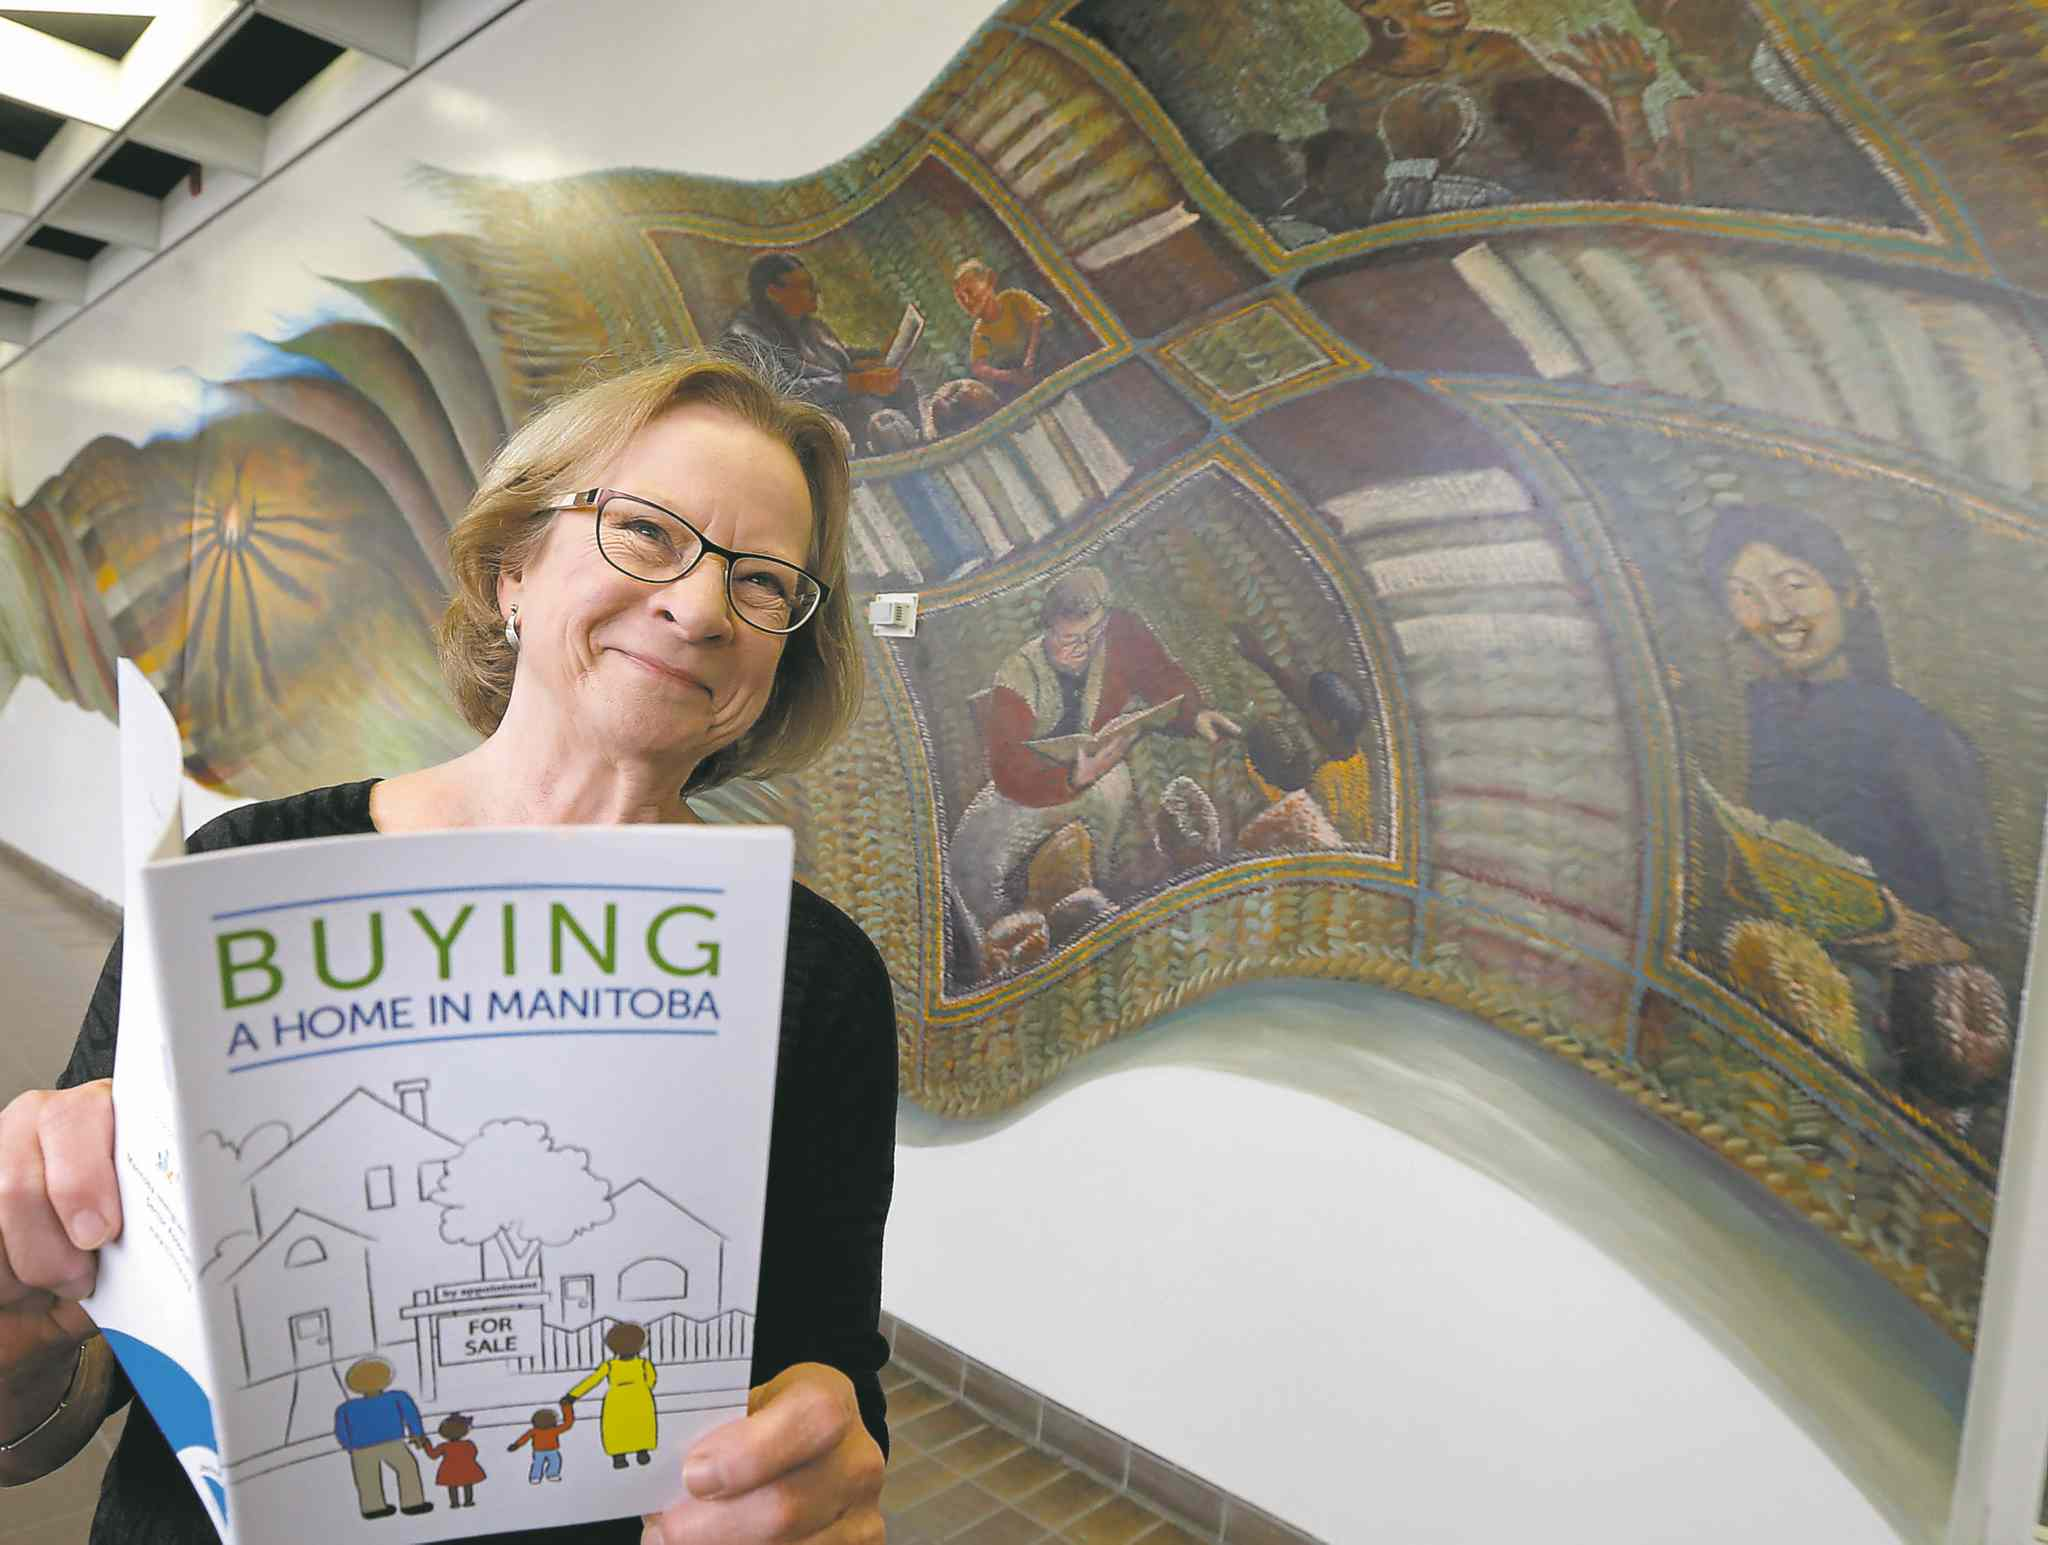 Author Katherine Pavlik said Buying a Home in Manitoba had to be attractive in order to reach its target audience.